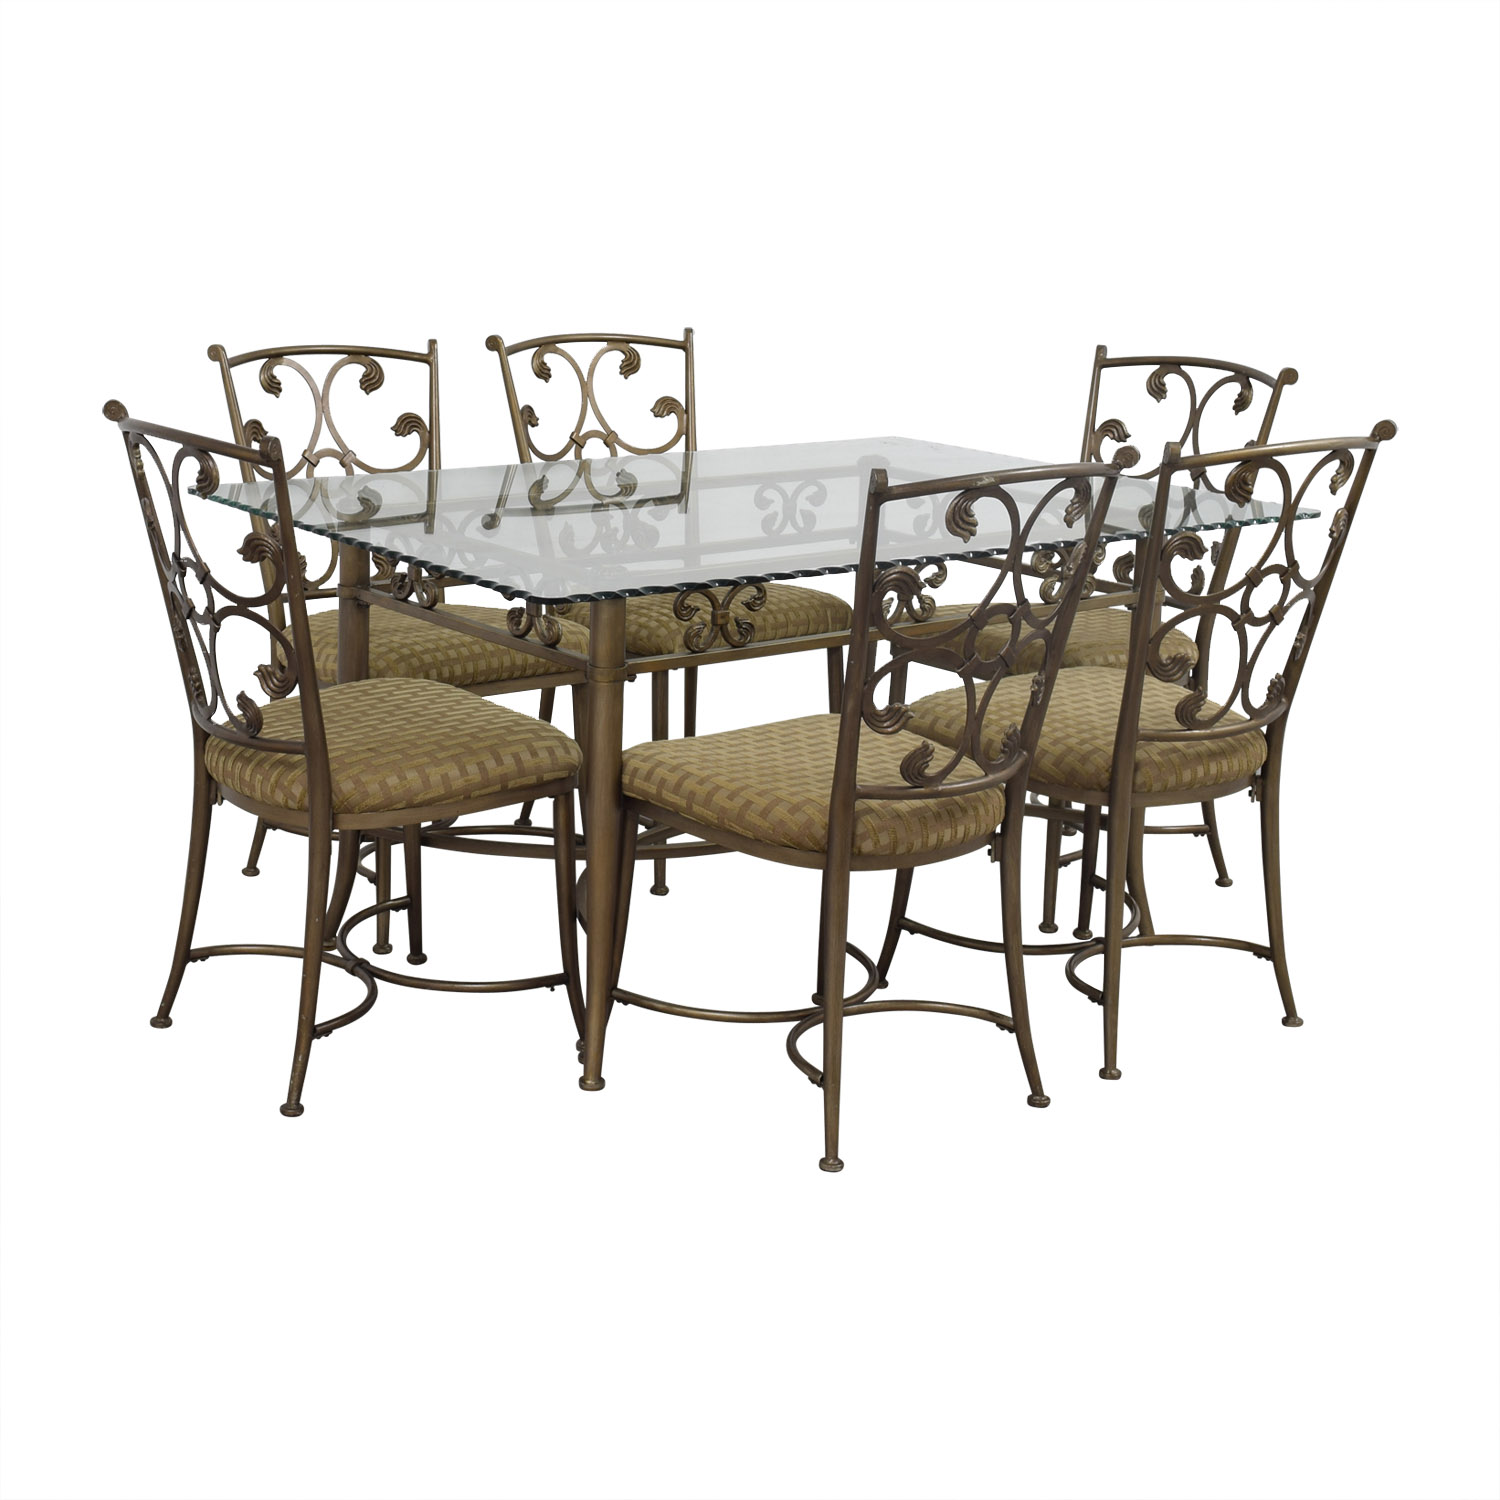 Glass And Gold Wrought Iron Dining Set / Tables